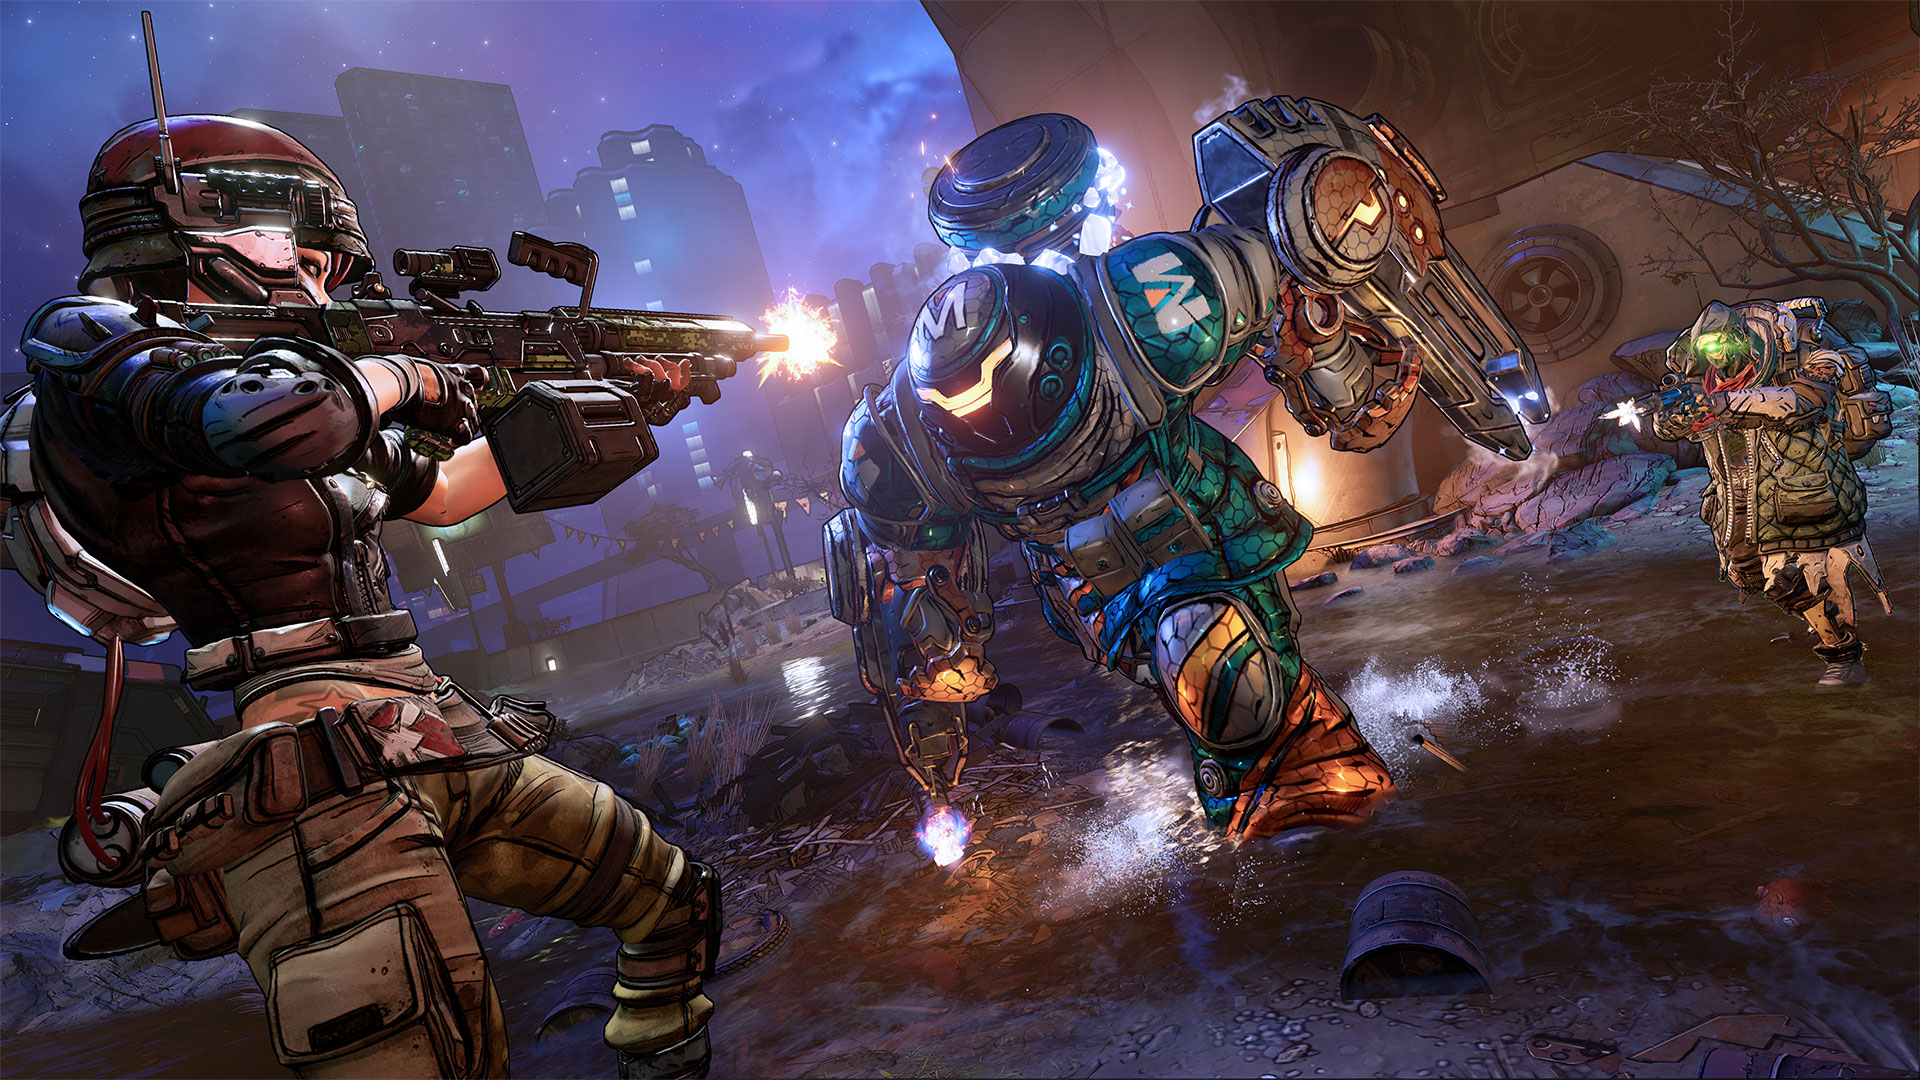 Borderlands 3 Accessibility Options Detailed by Gearbox